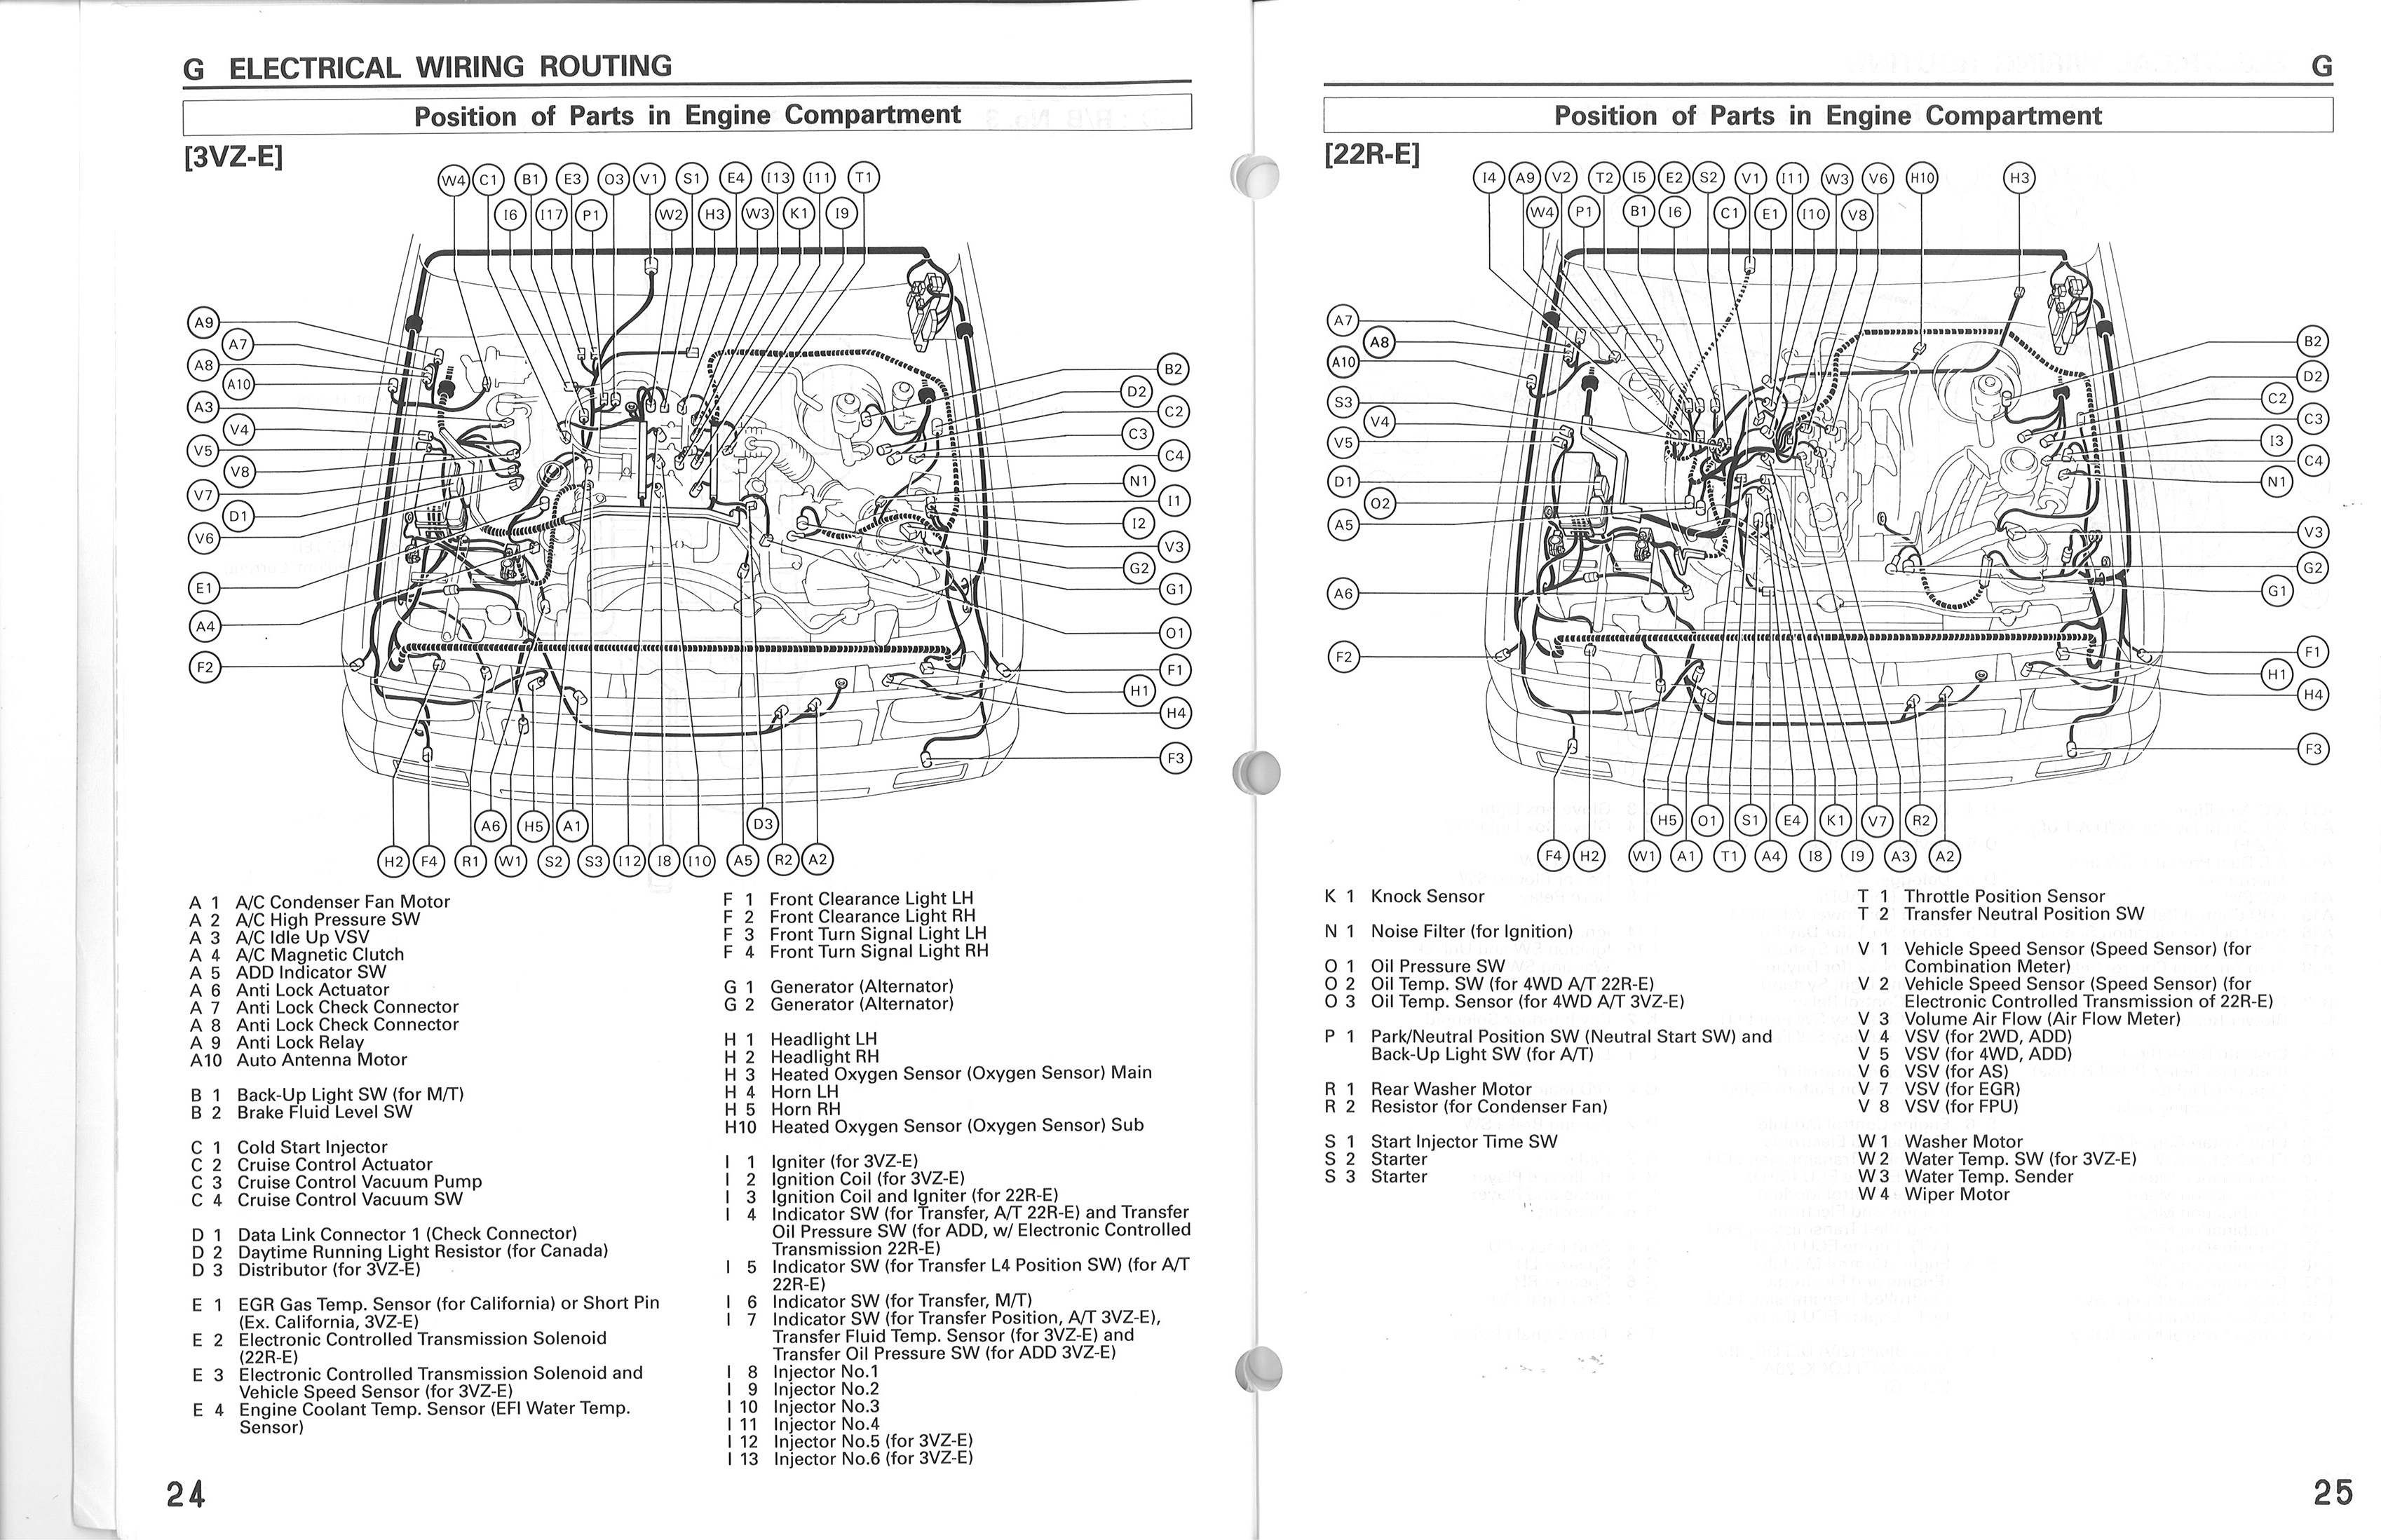 1994 Toyota Pickup Engine Diagram Archive Of Automotive Wiring 94 Ford Explorer Vacuum Hose 1999 1992 How To Your Trouble Codes On A Rh Detoxicrecenze Com